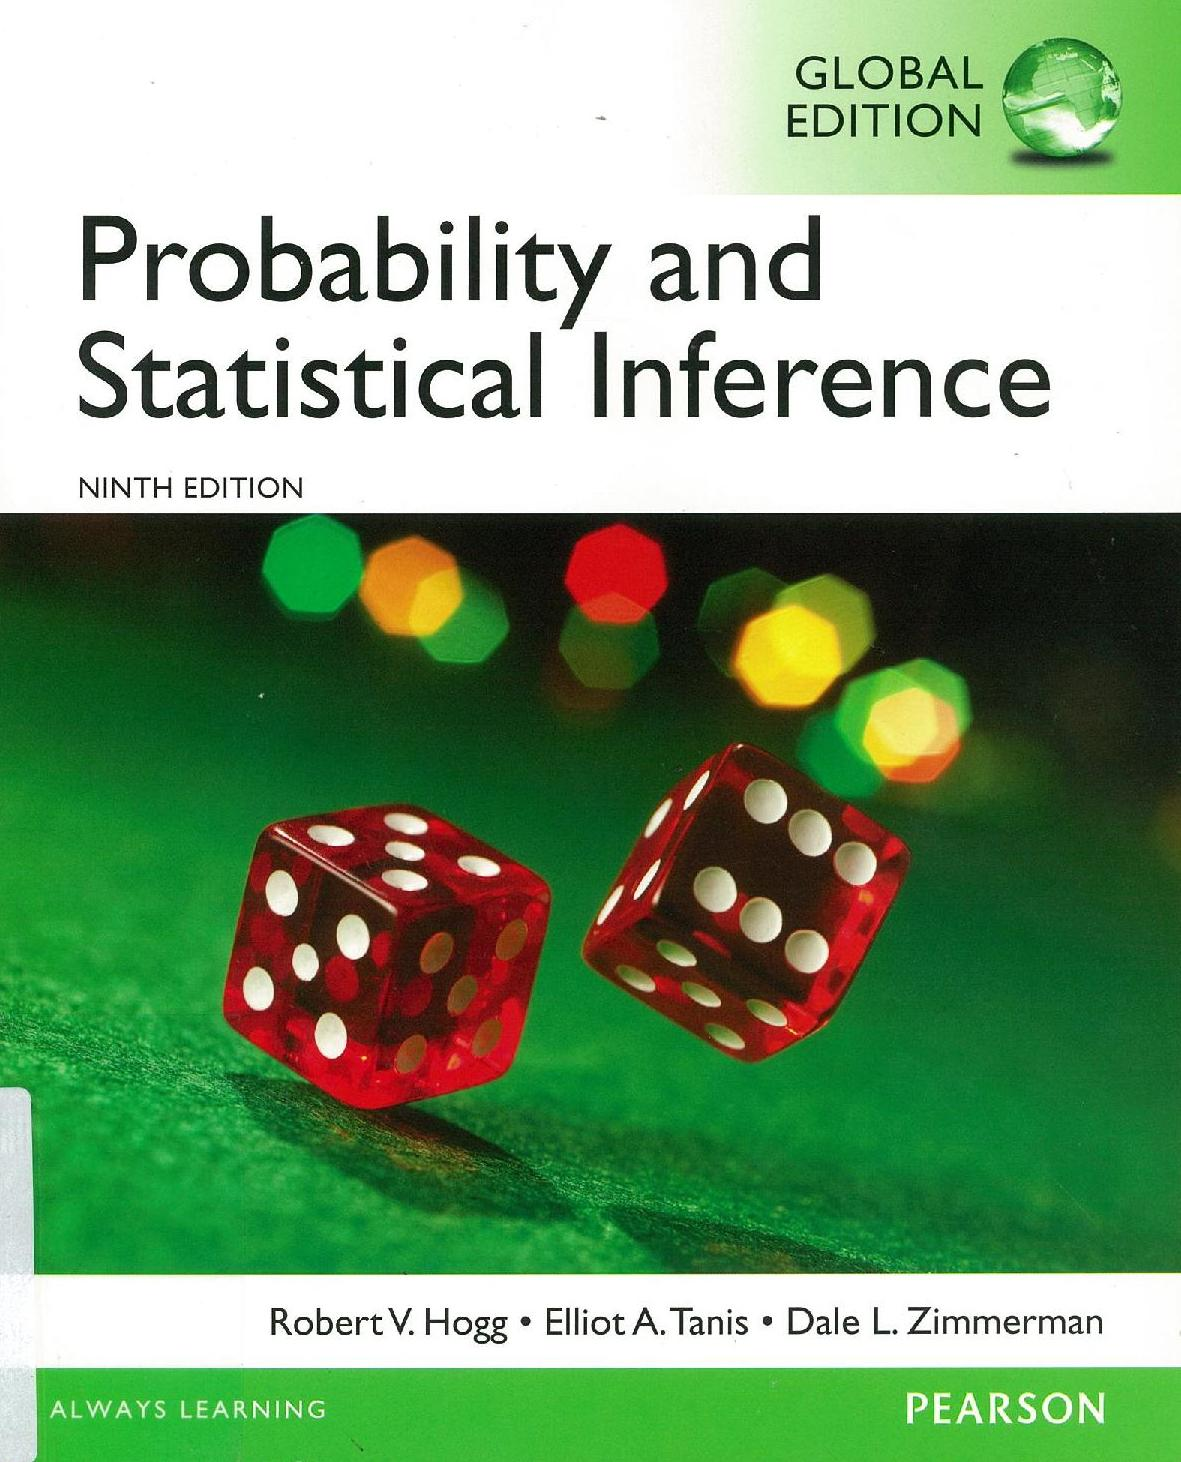 Probability and Statistical